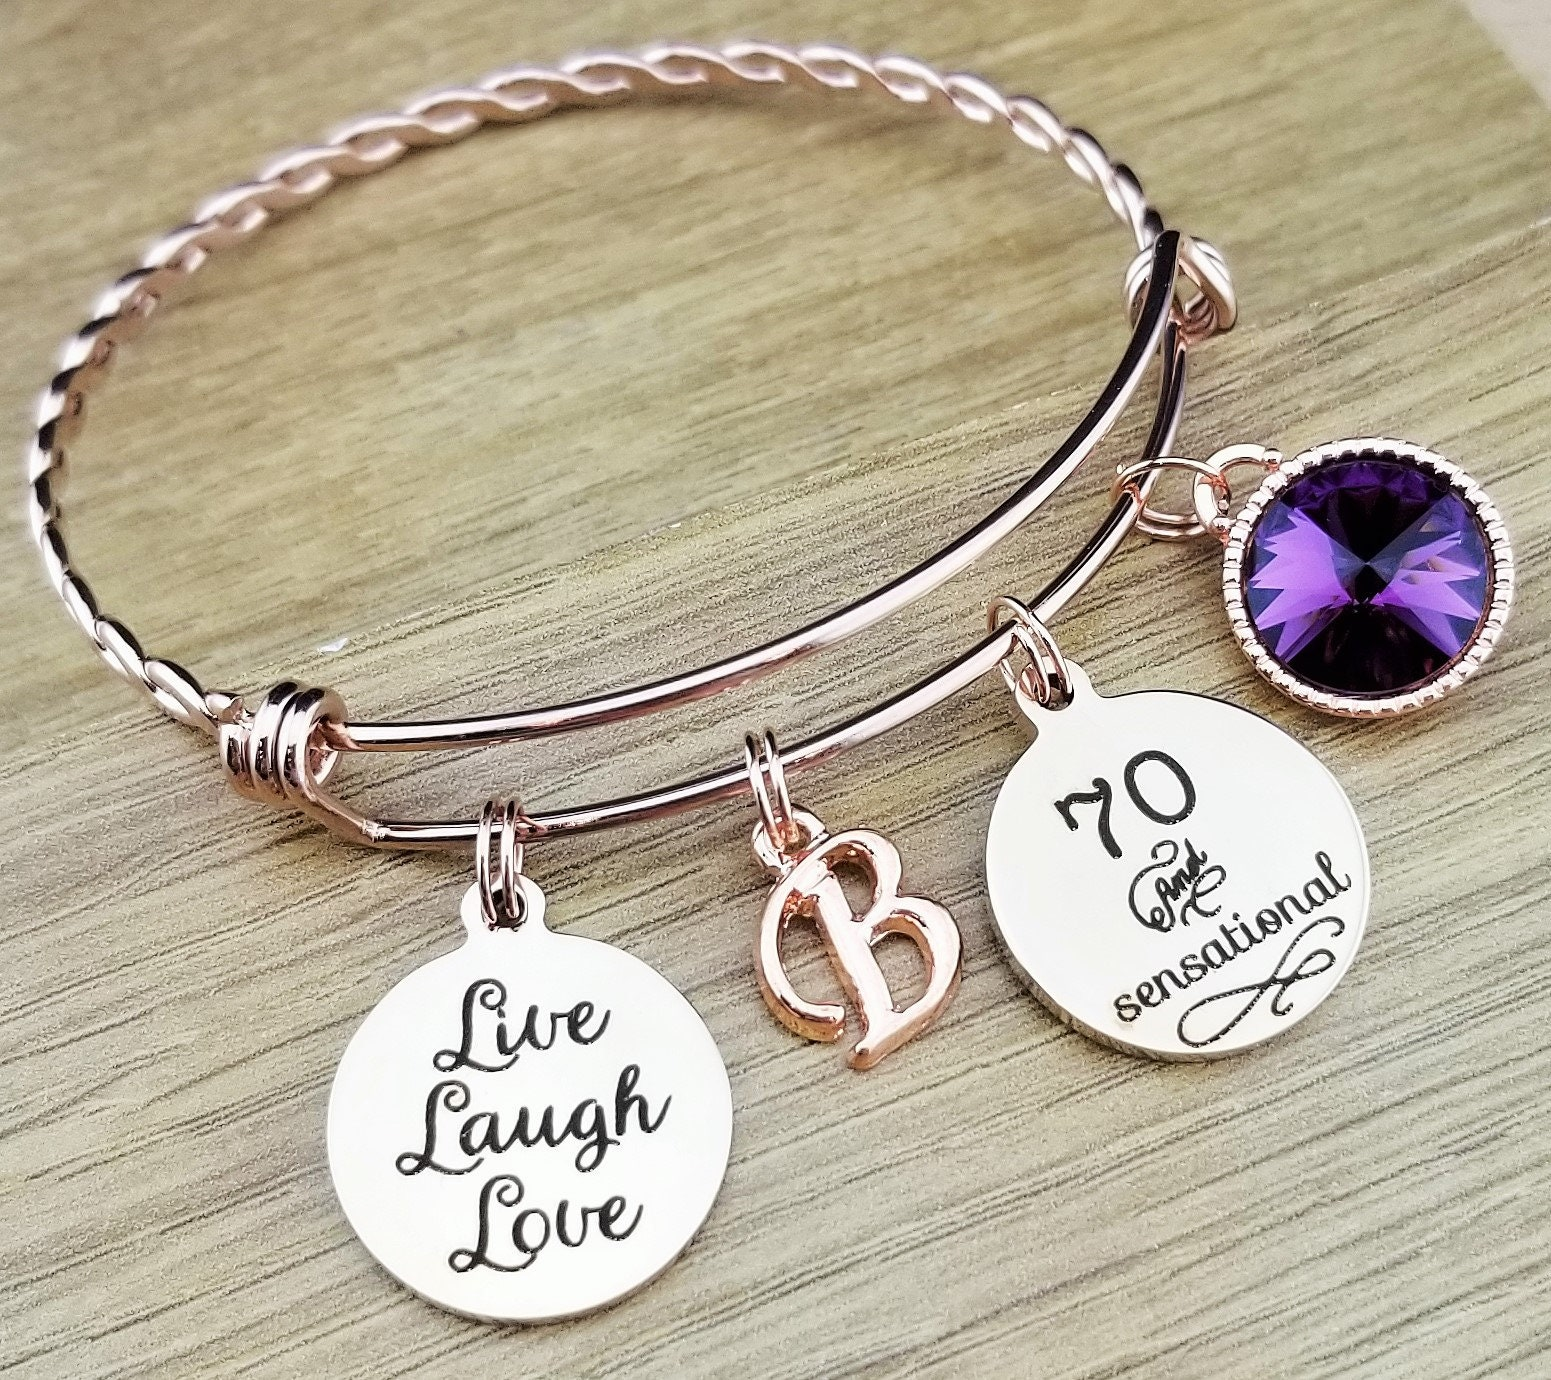 Rose Gold 70 Birthday Gift 70th Gifts For Her Friend Sensational